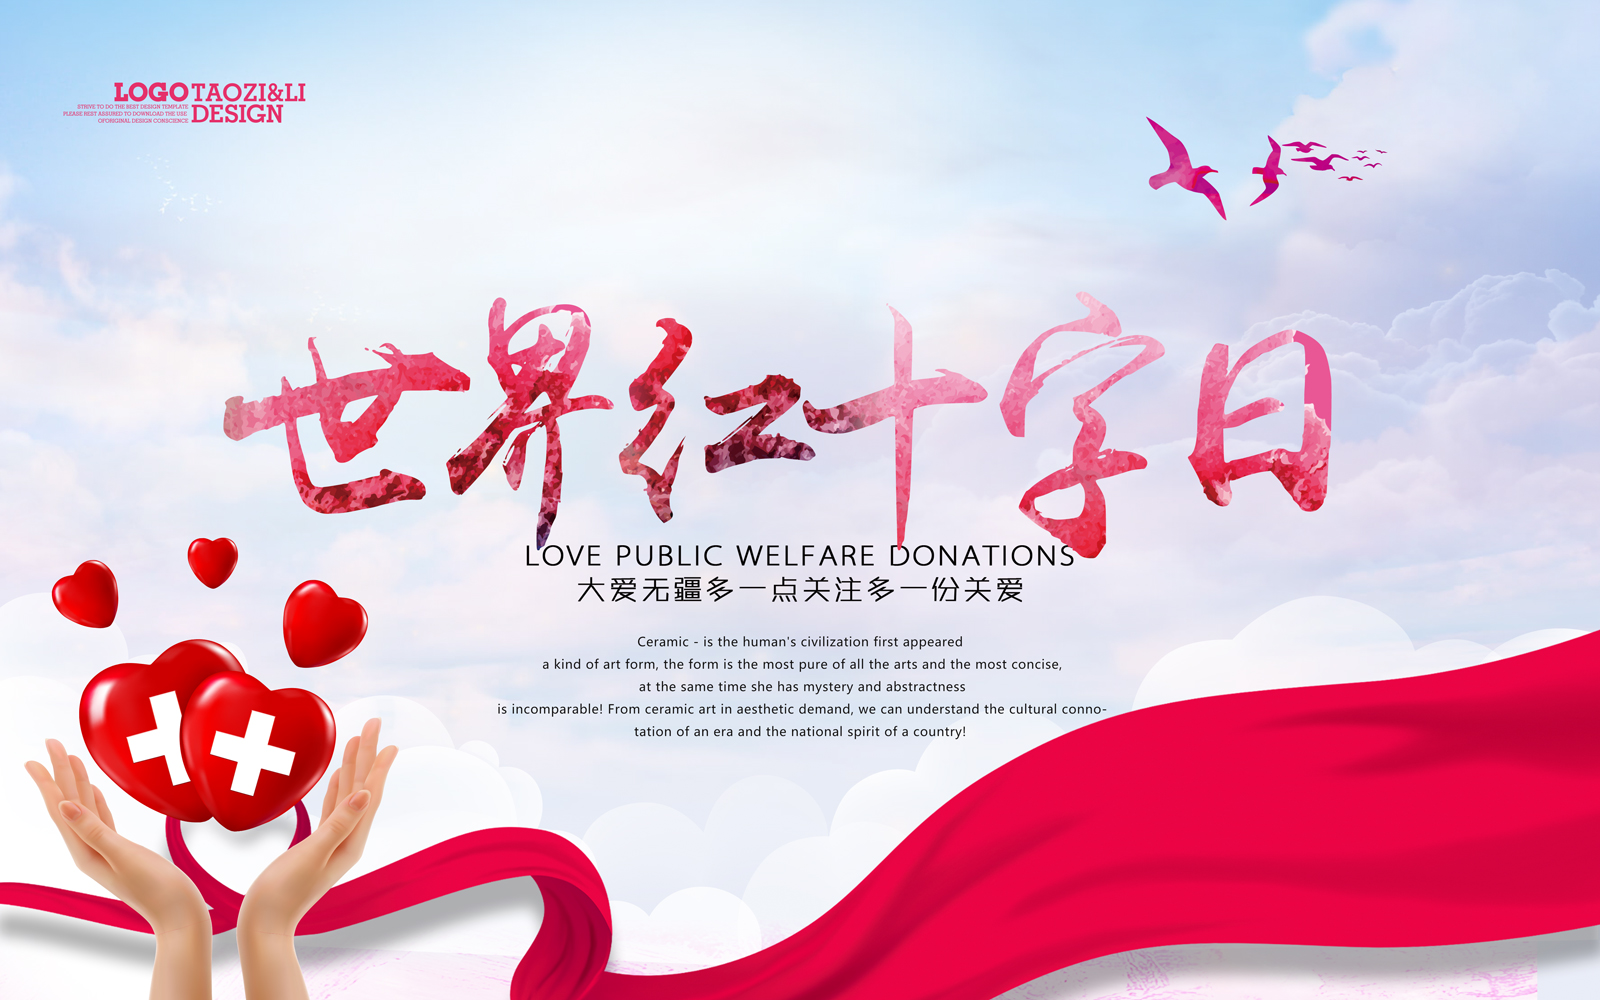 chinesefontdesign.com 2017 05 23 01 05 43 293944 International nurses day poster PSD photo China PSD File Free Download wings the compassion Red Cross pink background nurse medical apparatus and instruments love balloons international nurses day poster PSD picture for free download holding the compassion of nurses beauty angels 512 international nurses day posters